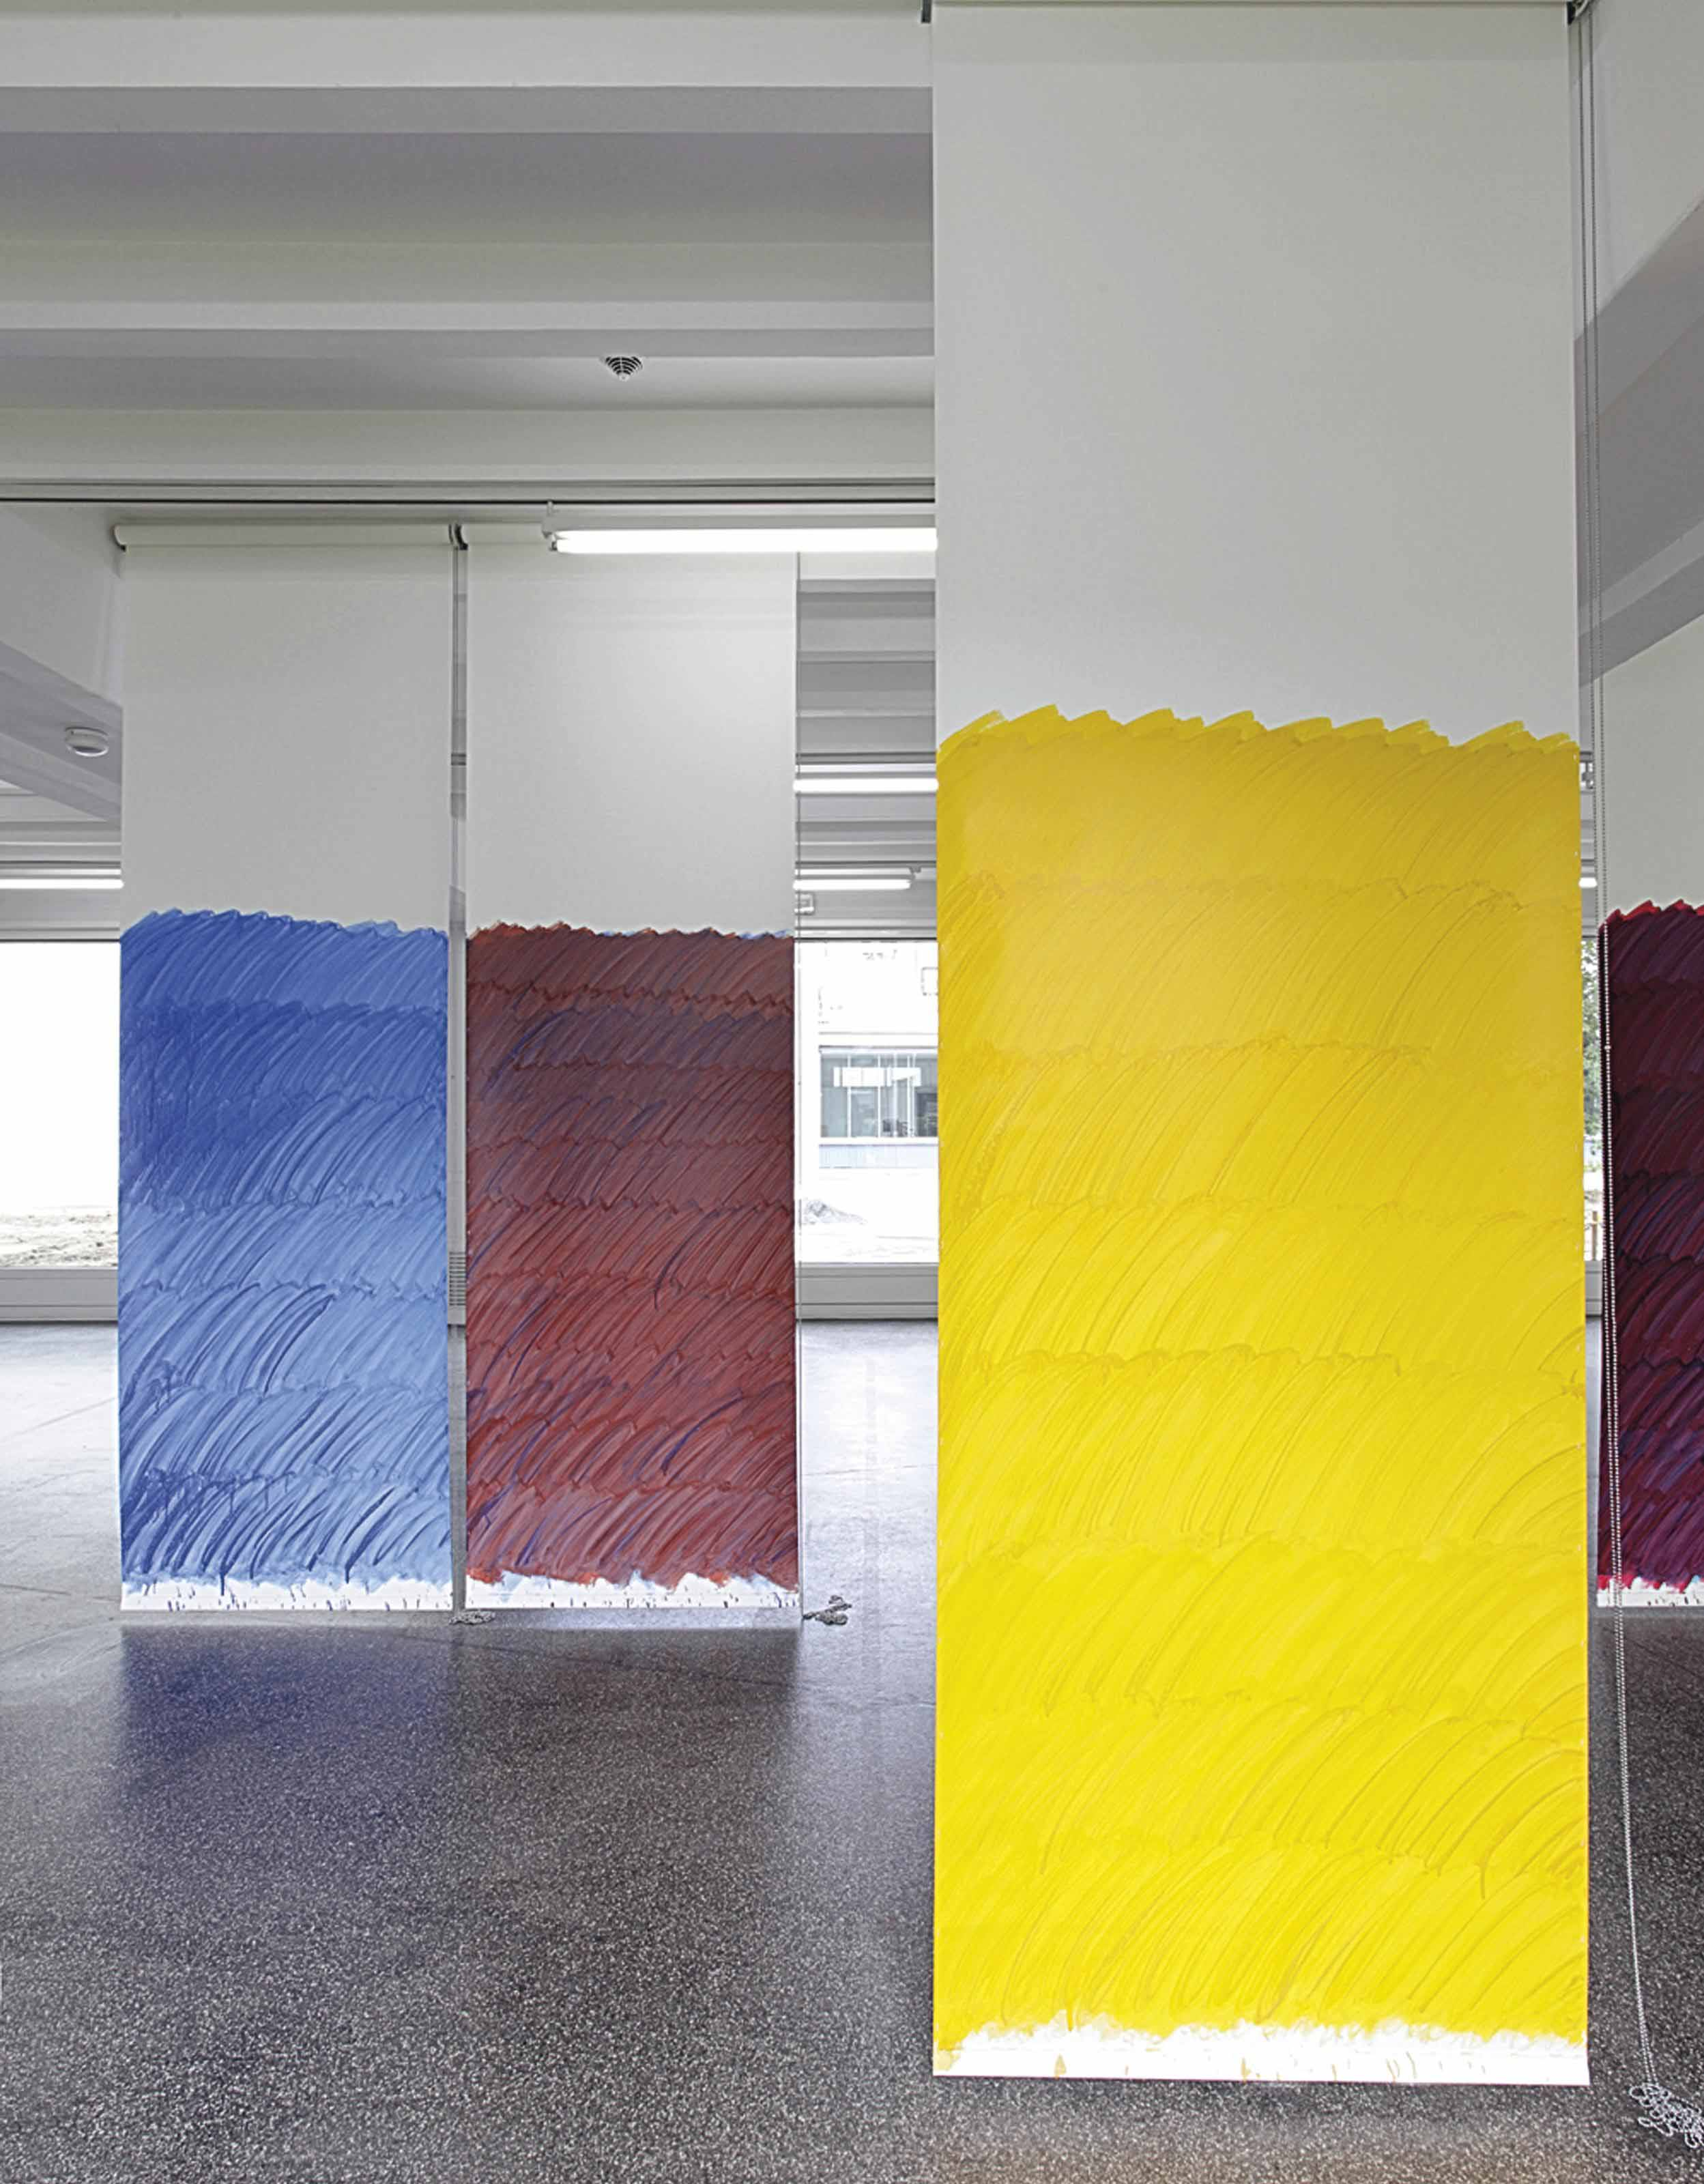 Blind No. 12 Fifteen-Foot Ceiling or Lower (Cobalt Blue/Red/Naples Yellow Hue/Diarylide Yellow)